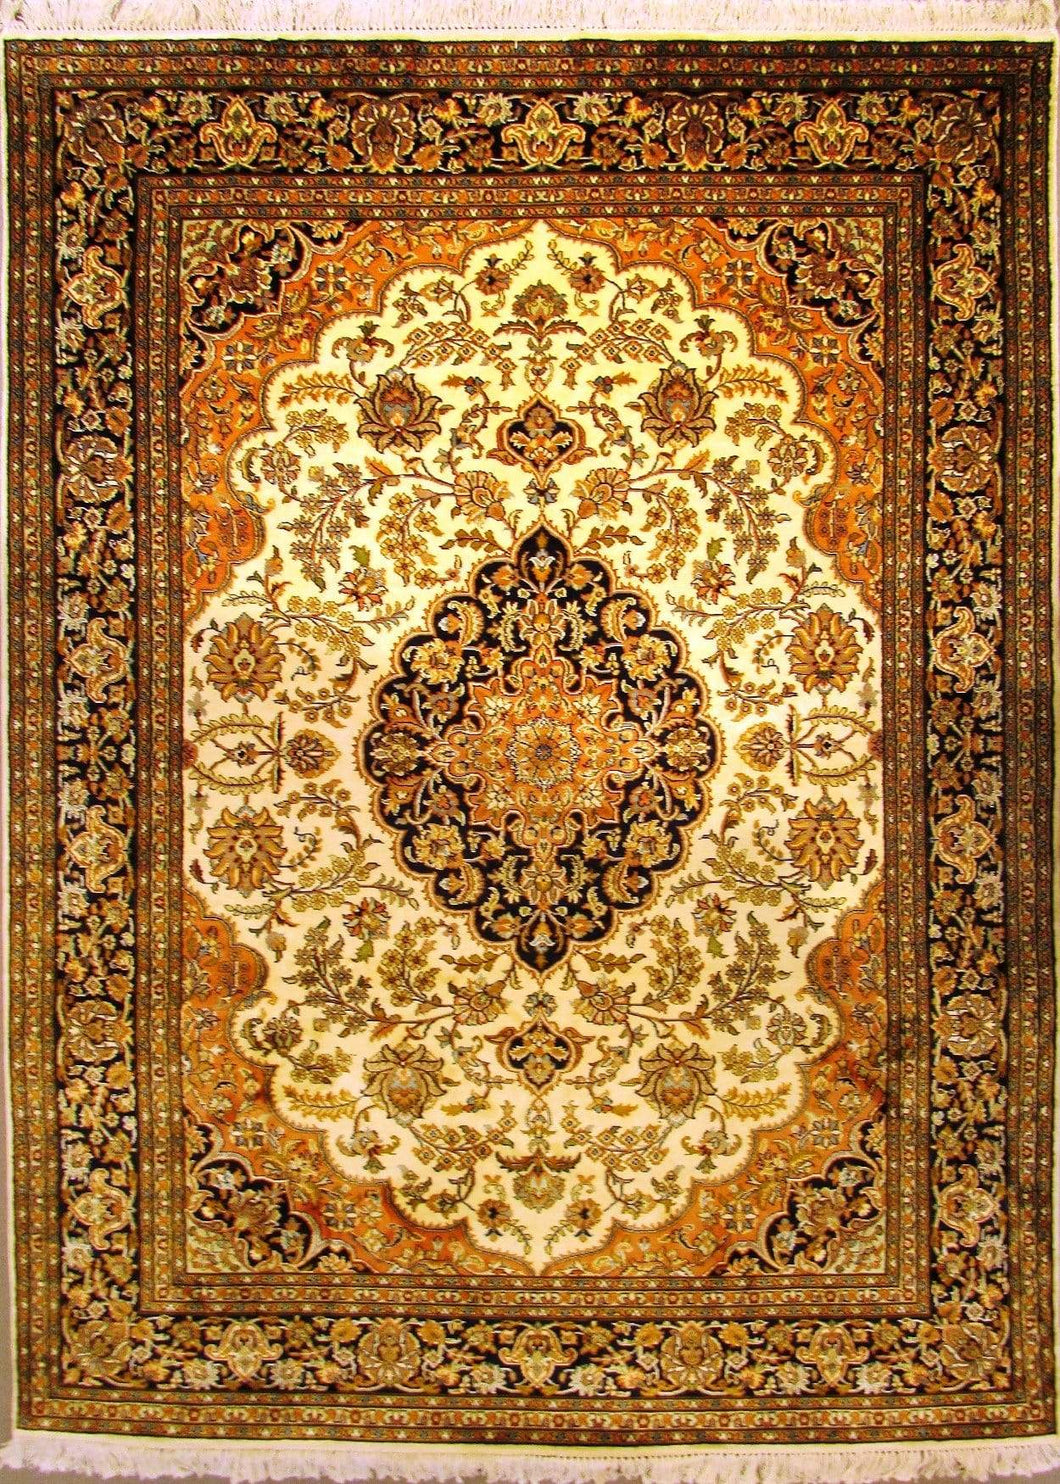 The Rugs Cafe Carpets 5x7 / White Charbagh (Four Gardens) Design Silk Carpet - White